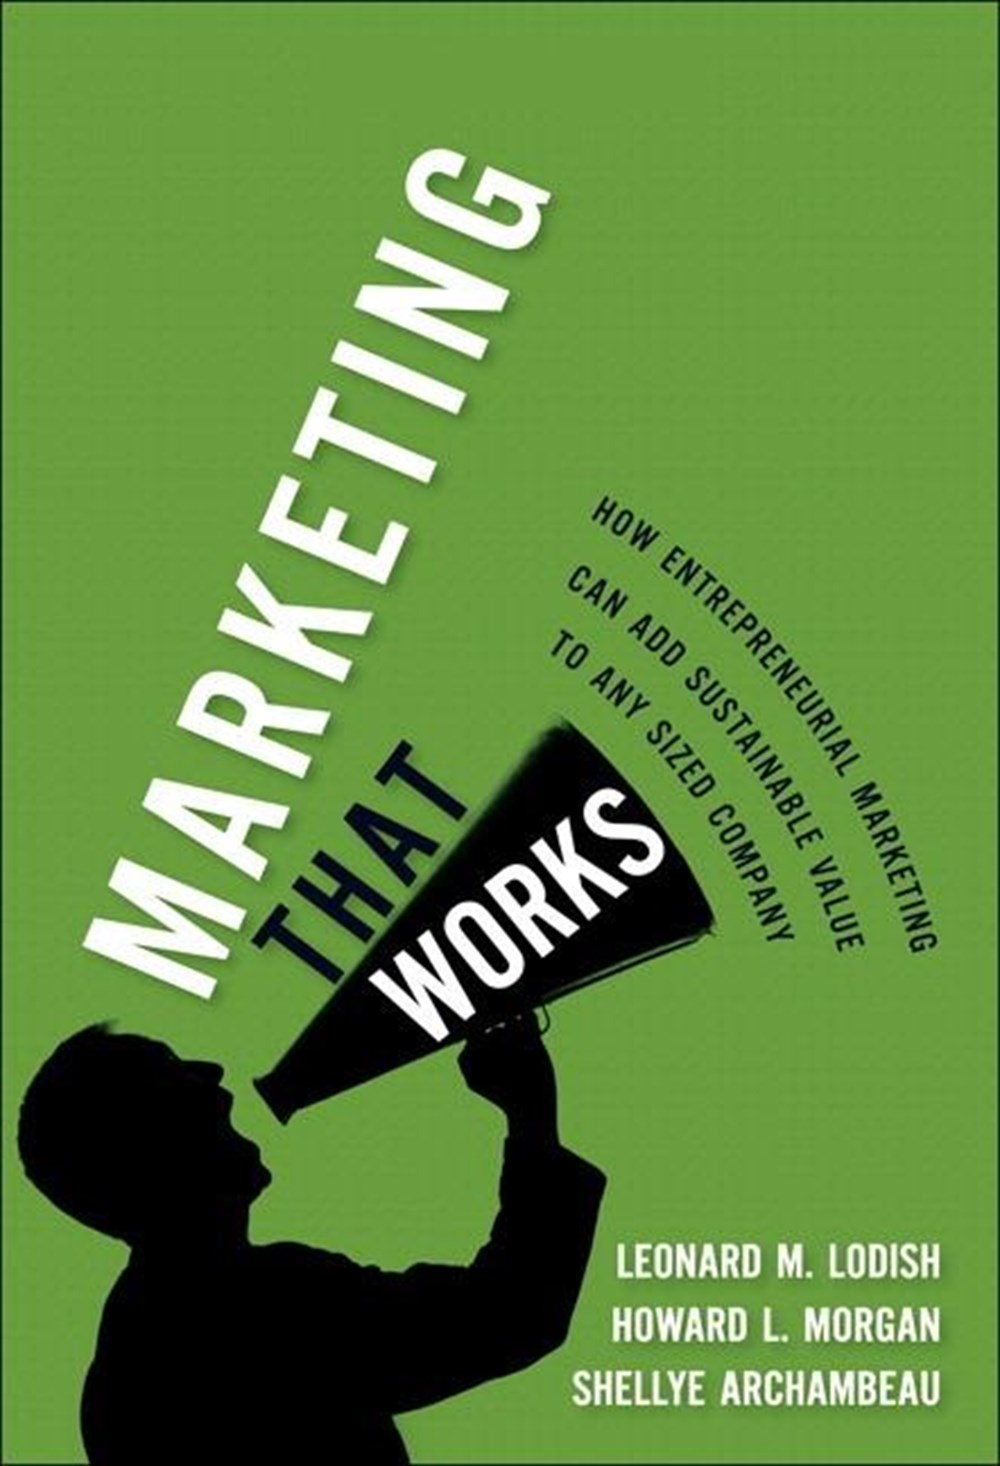 Marketing That Works How Entrepreneurial Marketing Can Add Sustainable Value to Any Sized Company (P